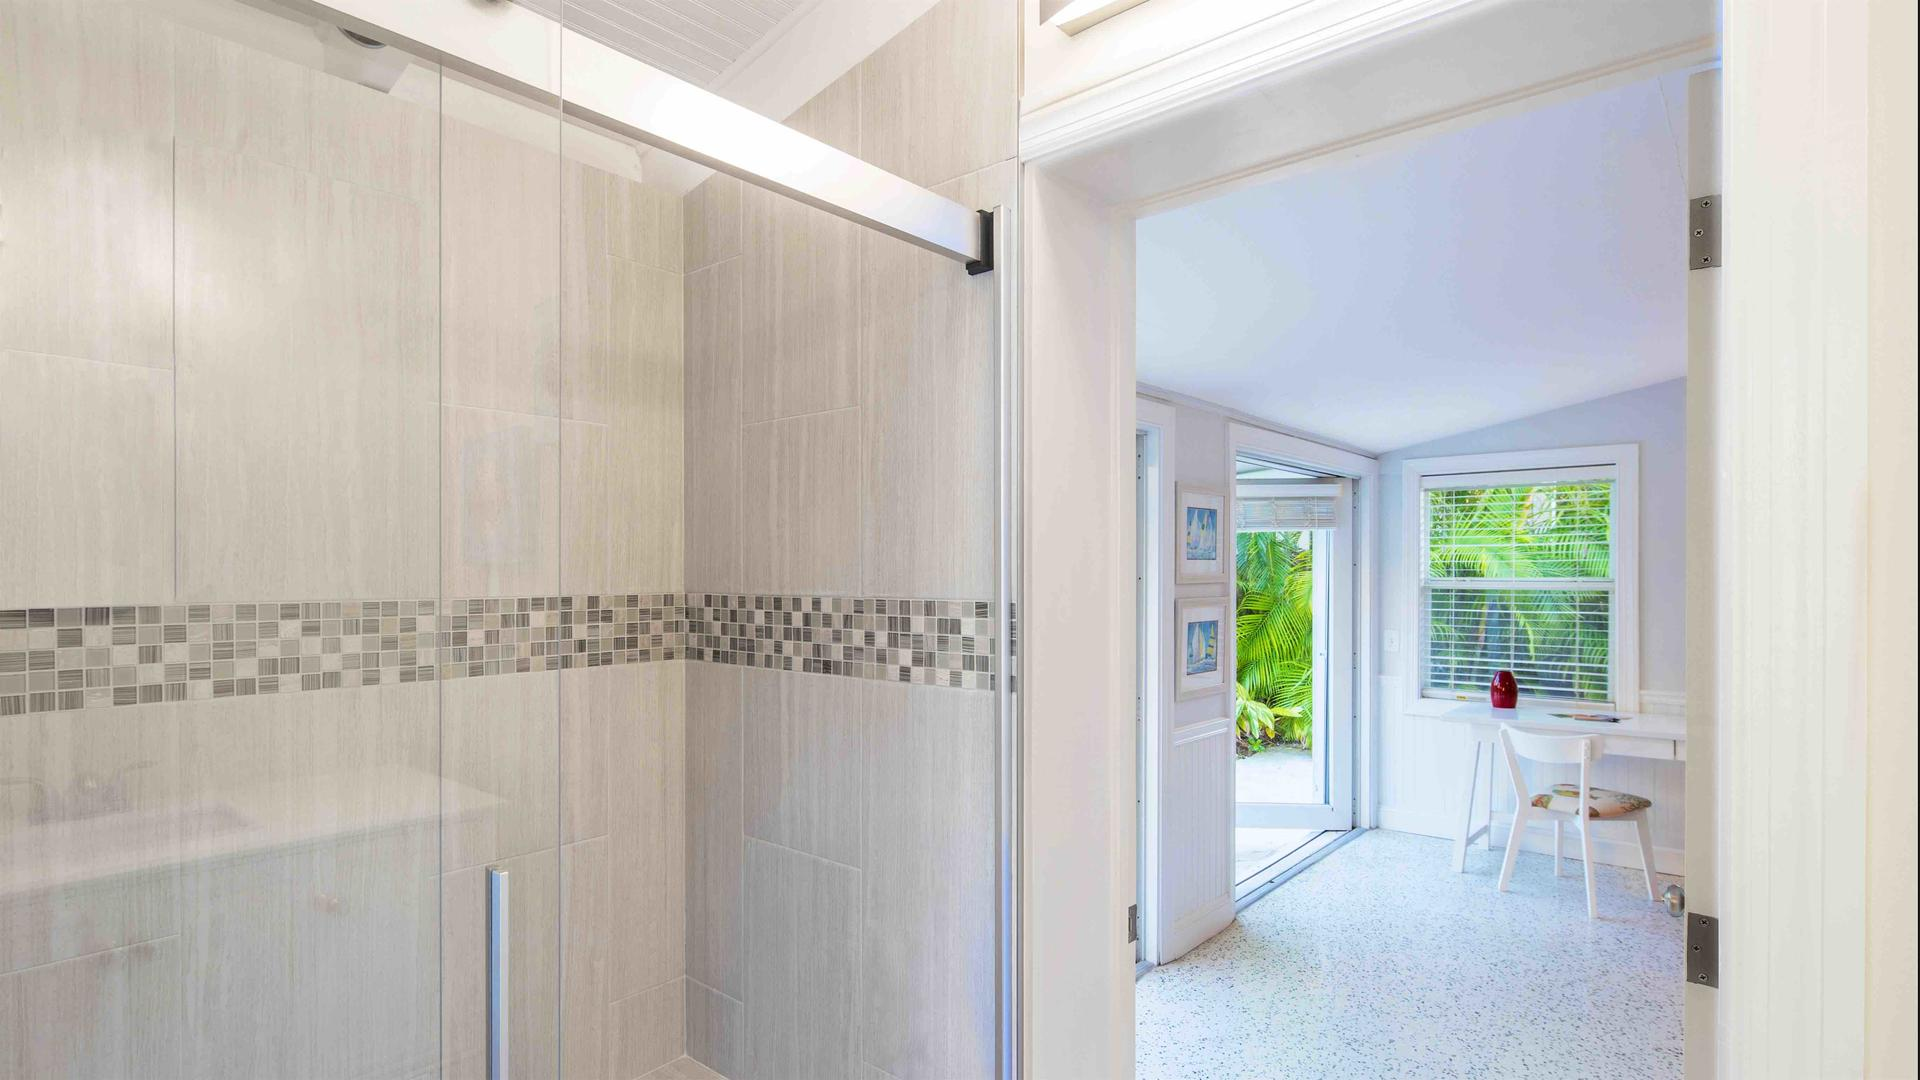 The second bathroom has a large glass shower...